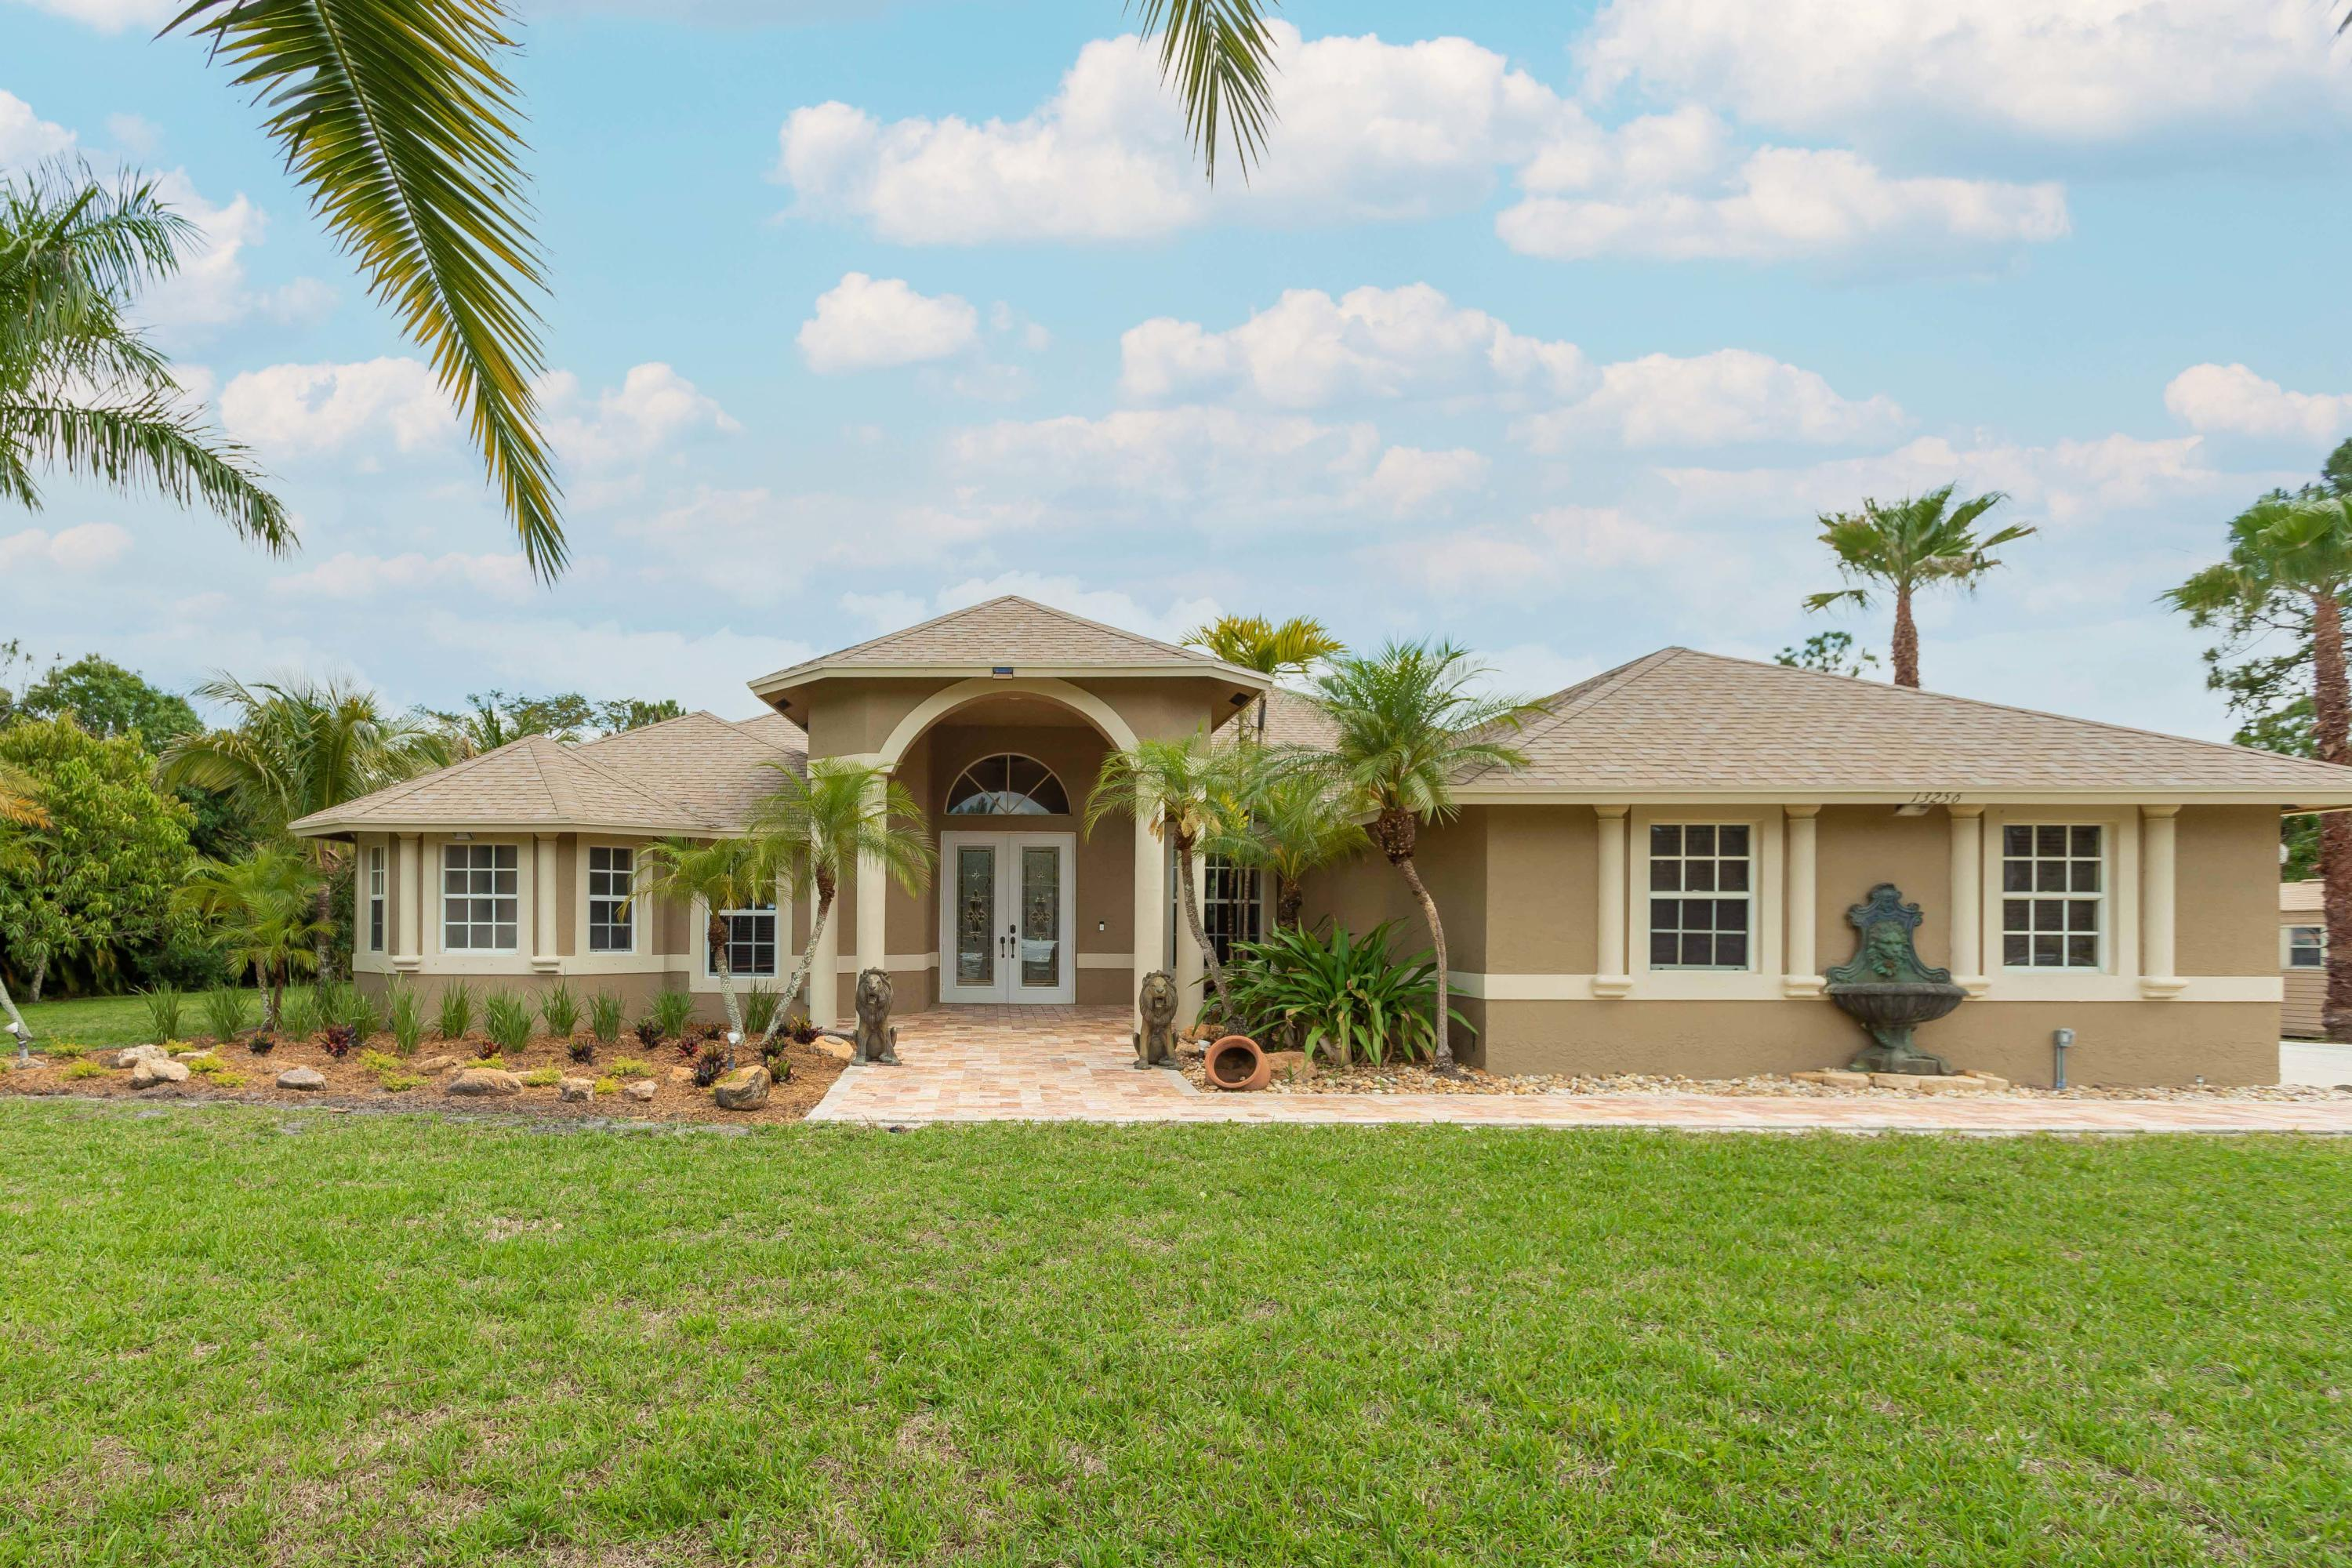 Home for sale in Acreage & Unrec West Palm Beach Florida